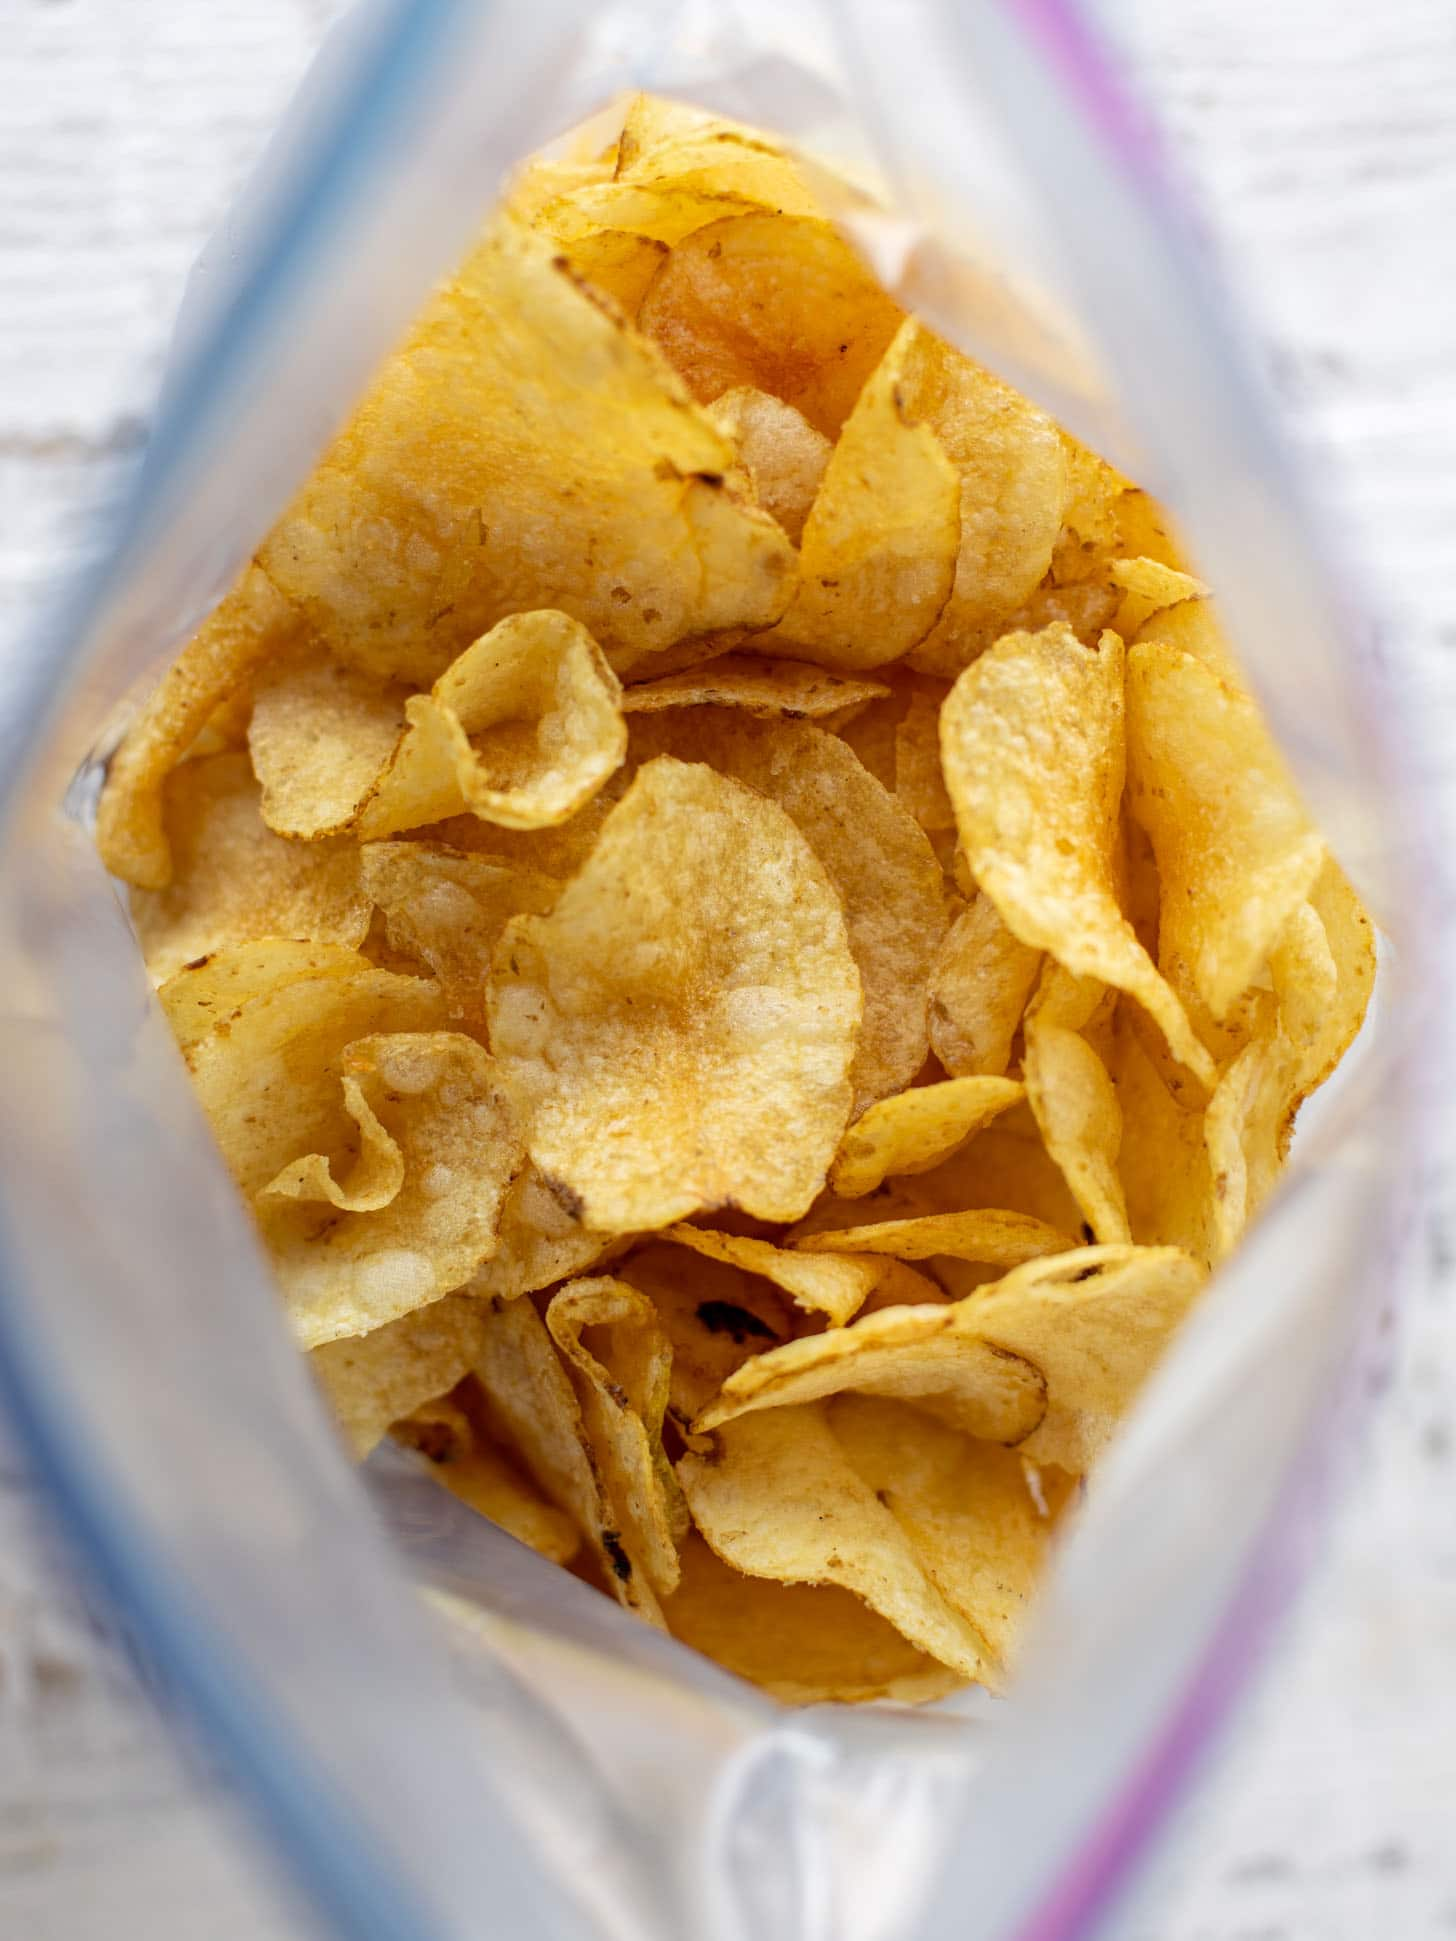 kettle cooked potato chips in a bag